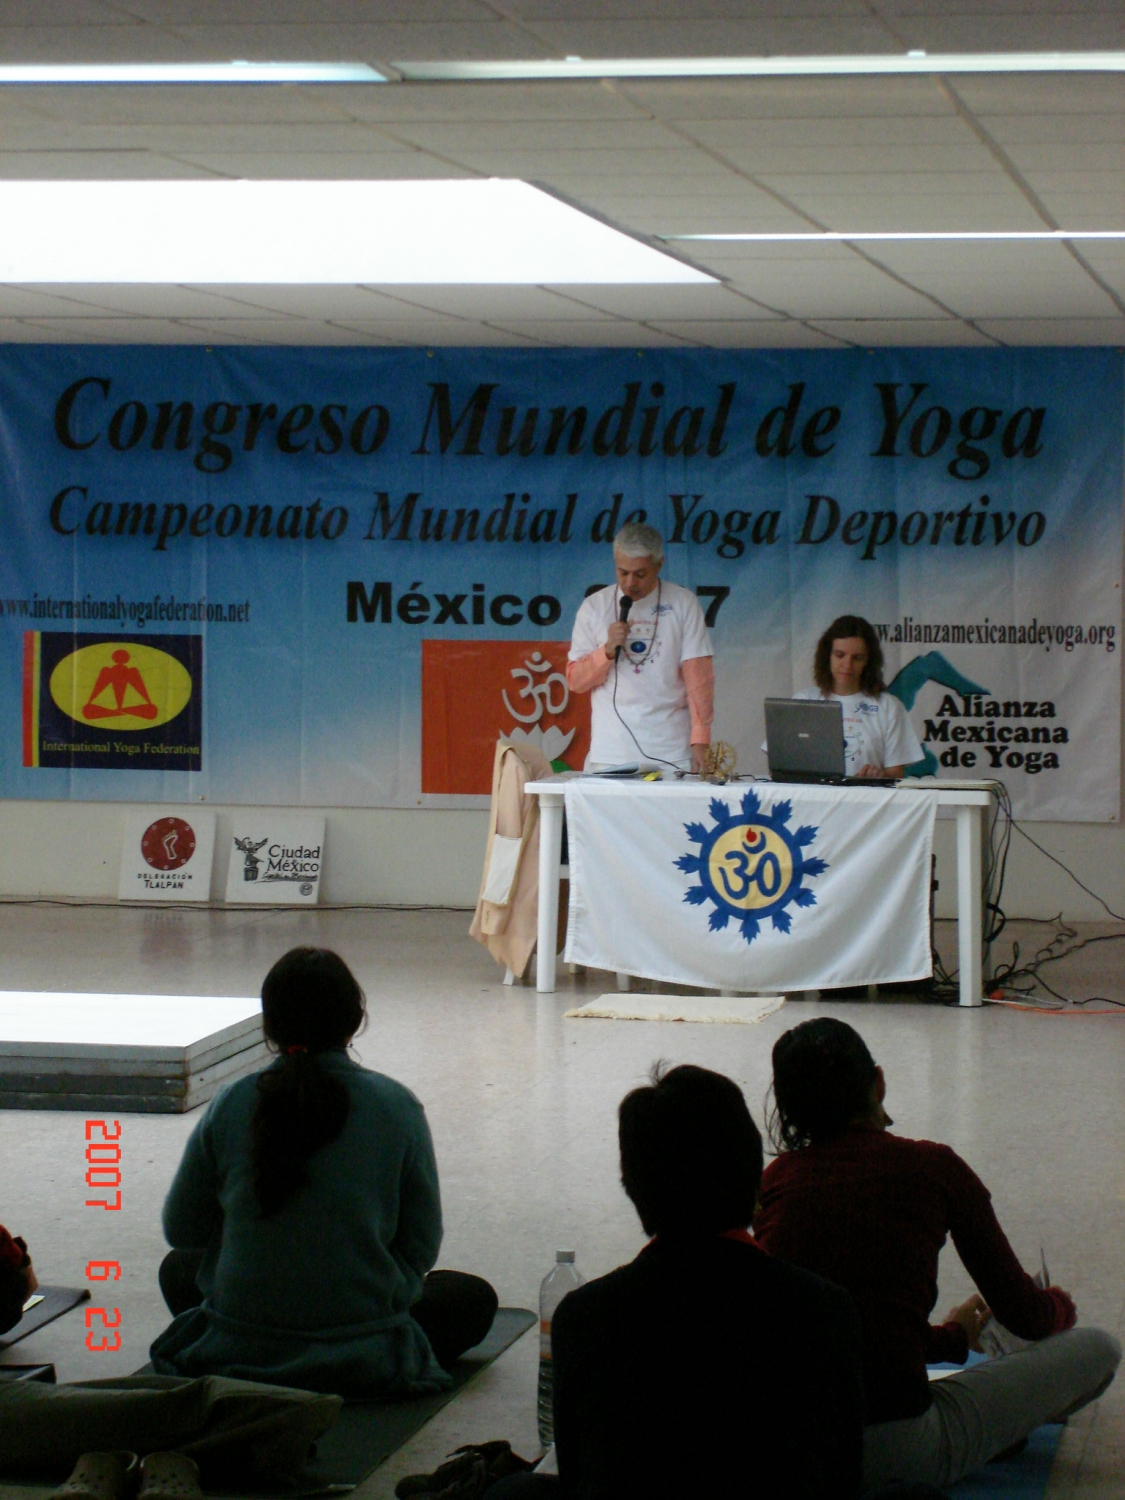 Speech by H.H. Jagat Guru Amrta Súryánanda Mahá Rája - International Yoga Gr. Master, at the Congreso Mundial de Yoga, Ciudad de México – 2007